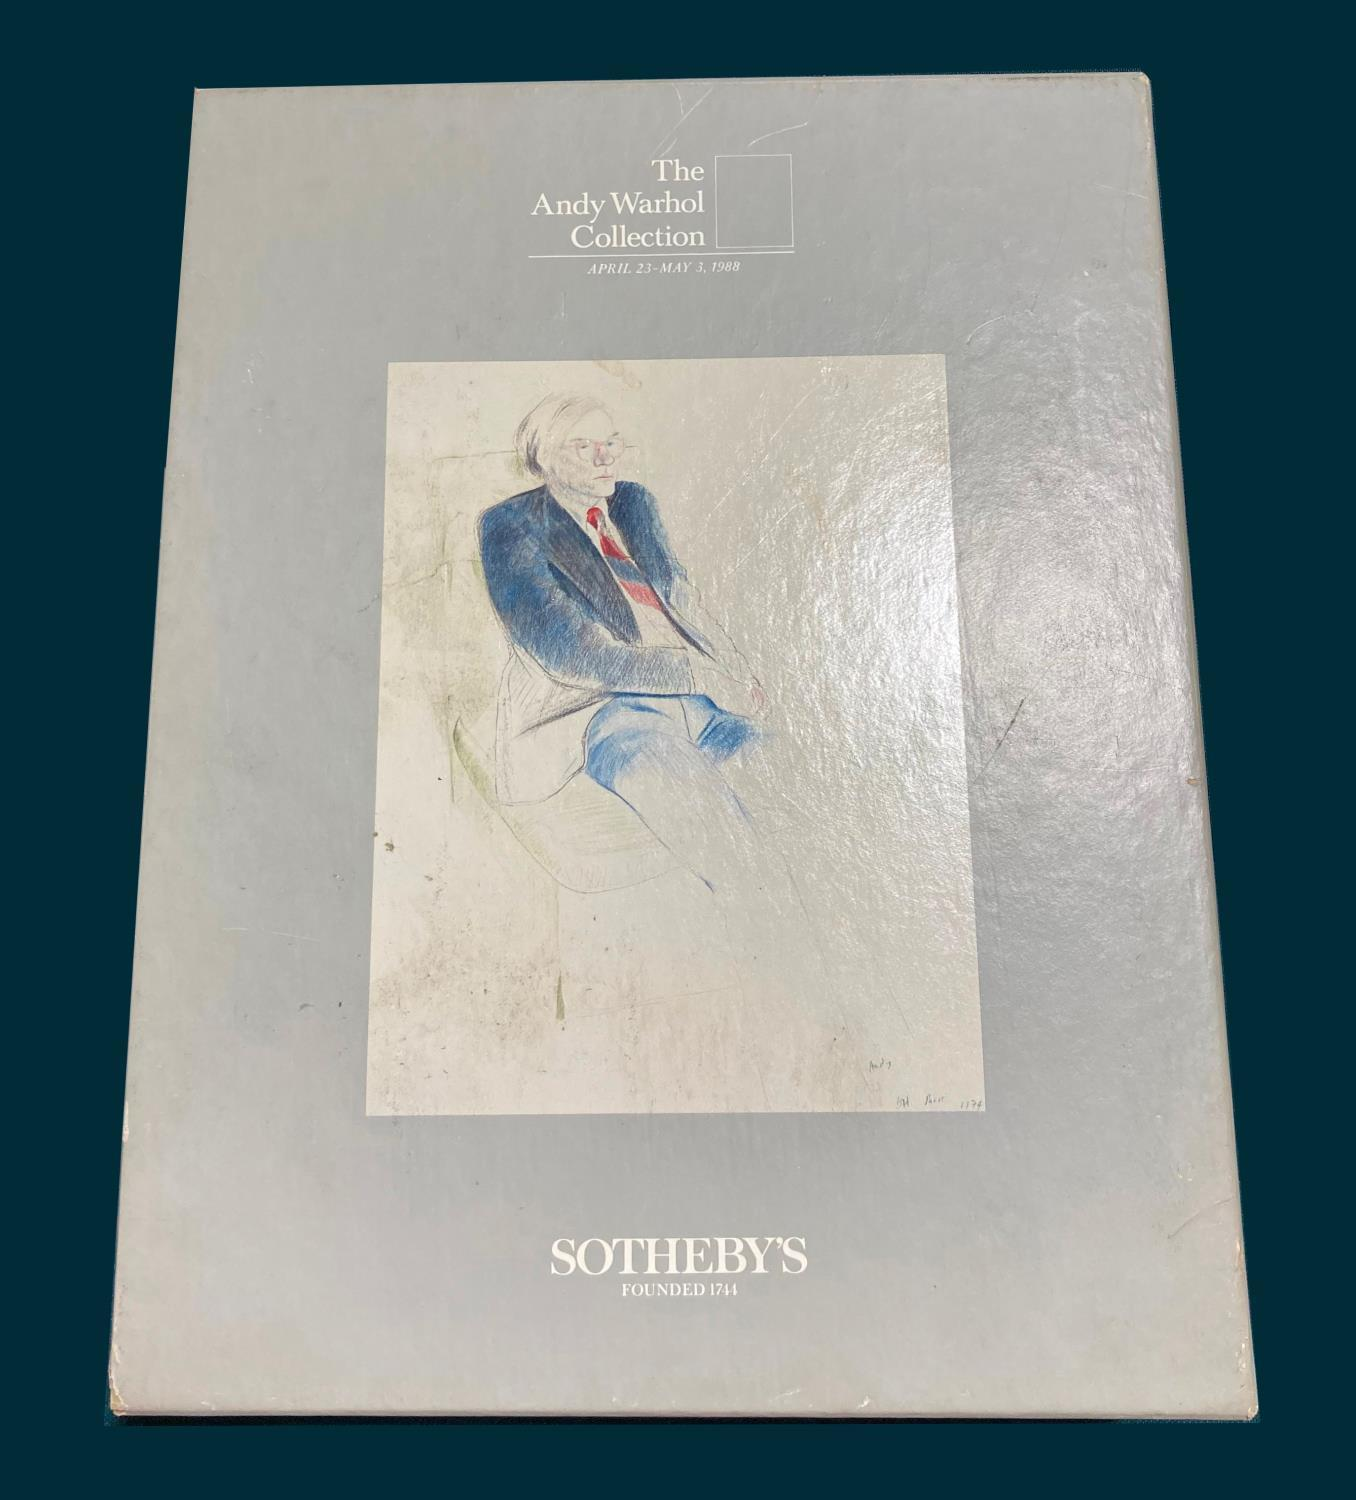 Auction Catalogues. The Andy Warhol Collection, 6 volumes, Sotheby's, 1988; The Edward James